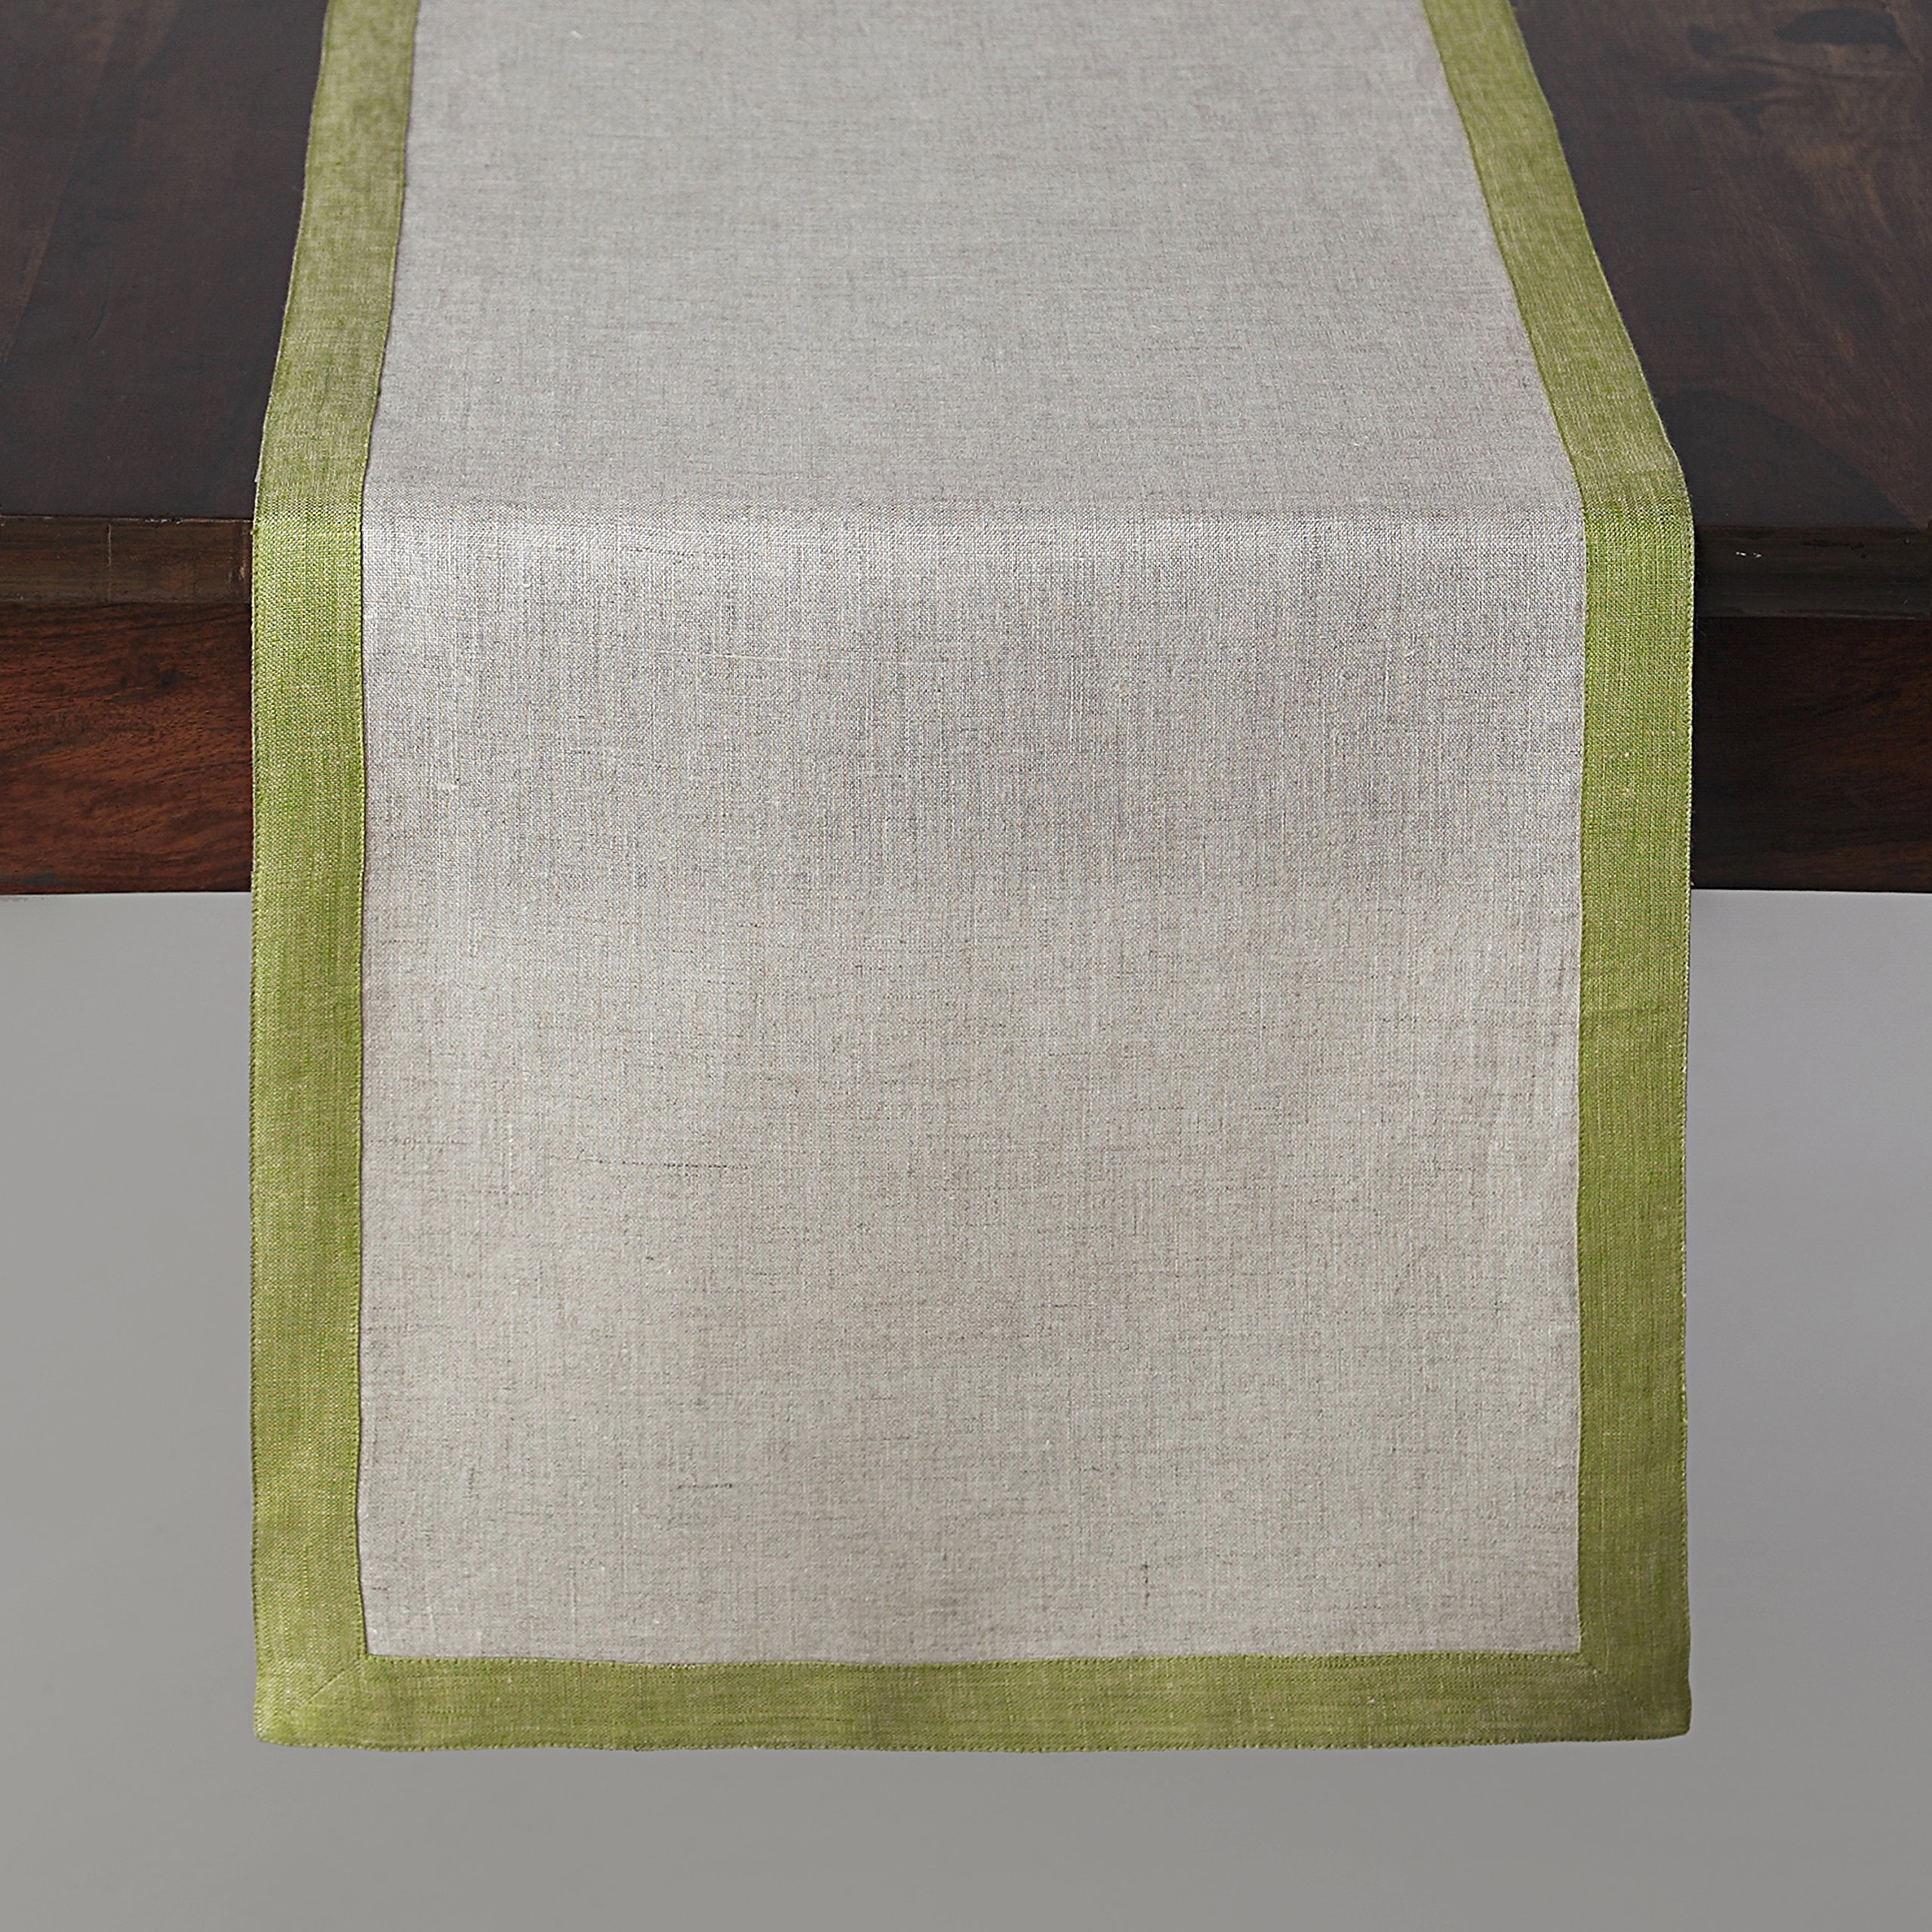 Solino Home Linen Table Runner - 14 x 90 inch, Natural Olive Rectangular Runner - 100% European Flax, Concordia